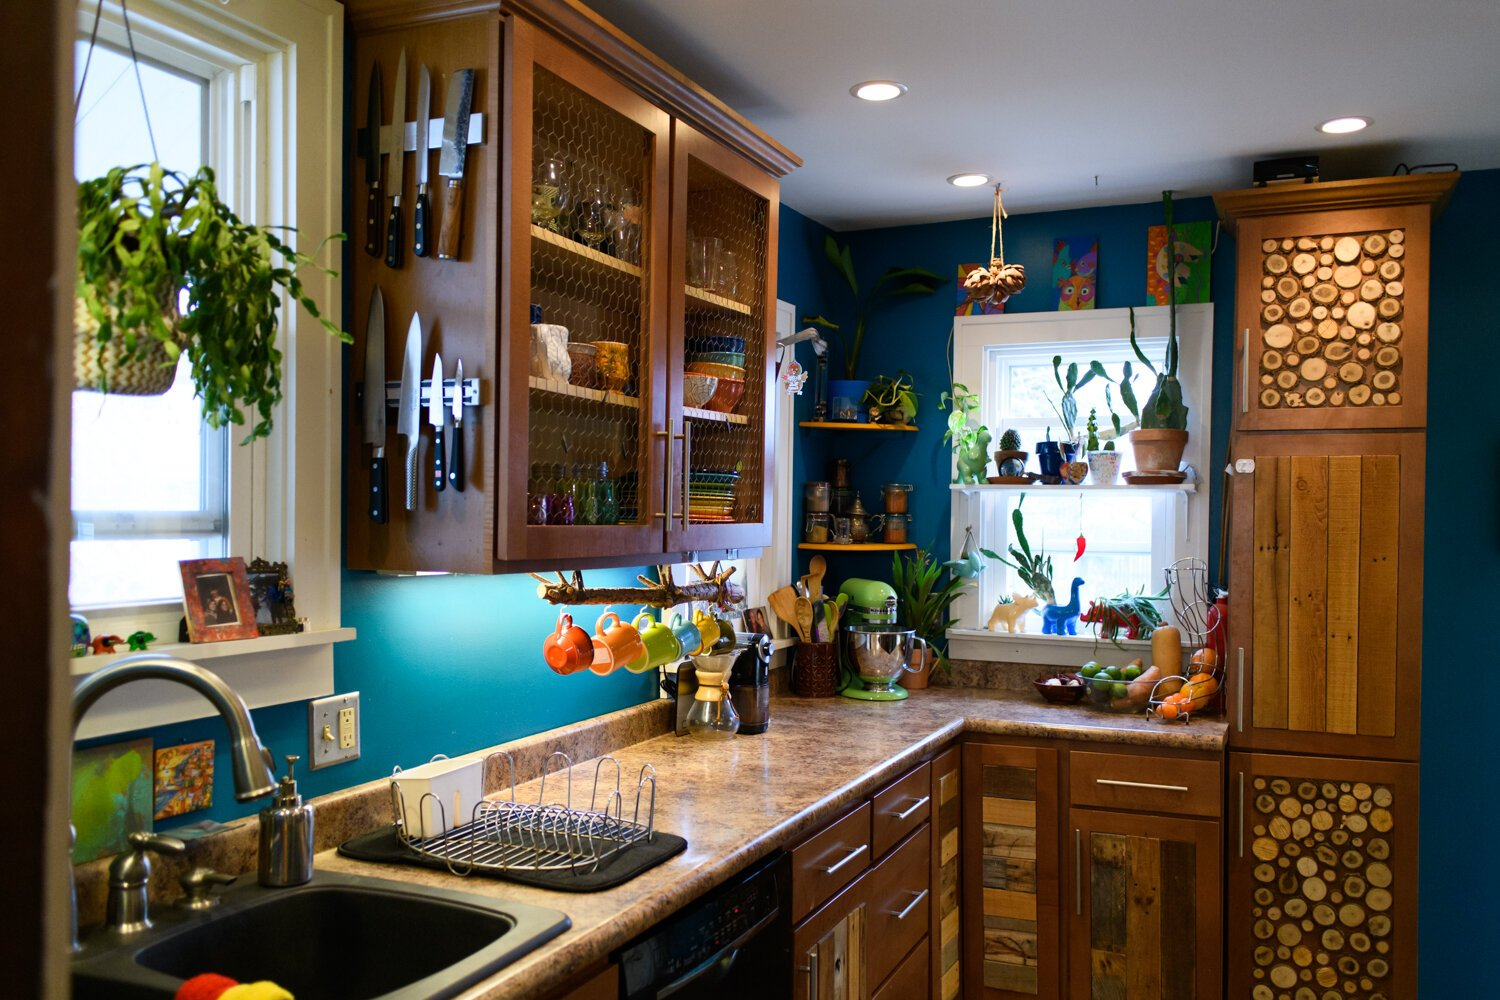 The kitchen features a lot of plants and woodwork at the Porter family home.